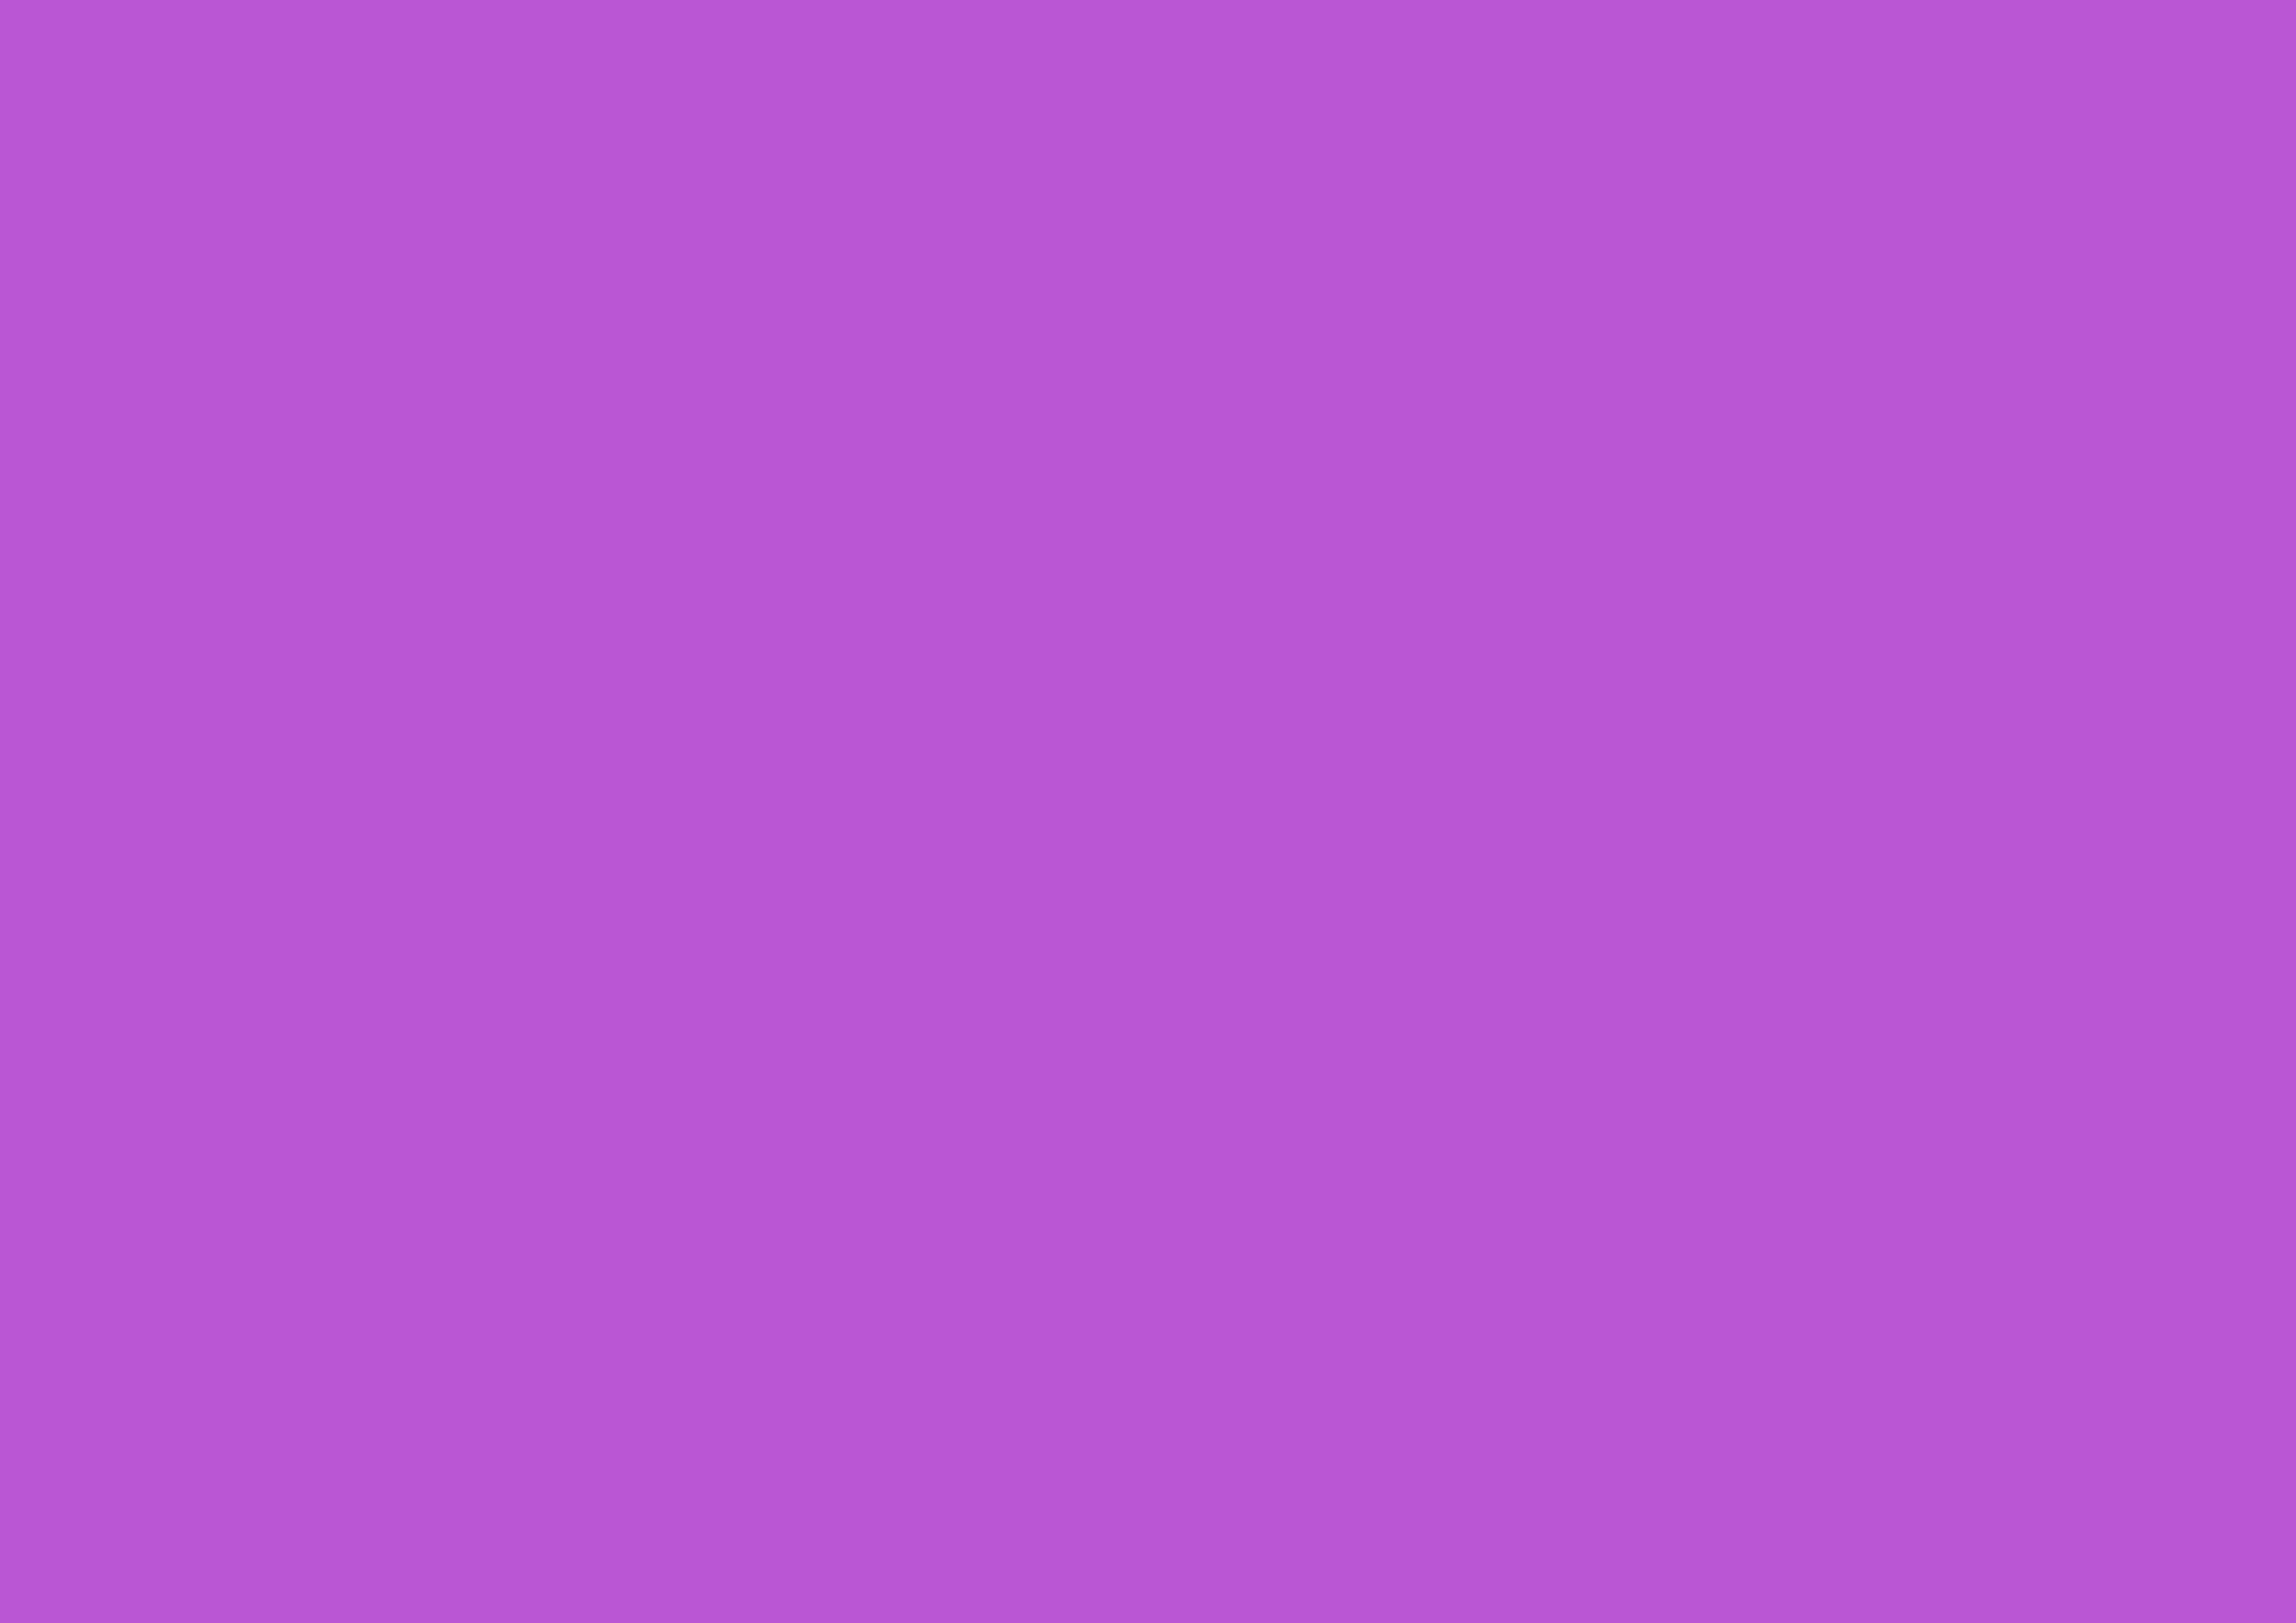 3508x2480 Medium Orchid Solid Color Background